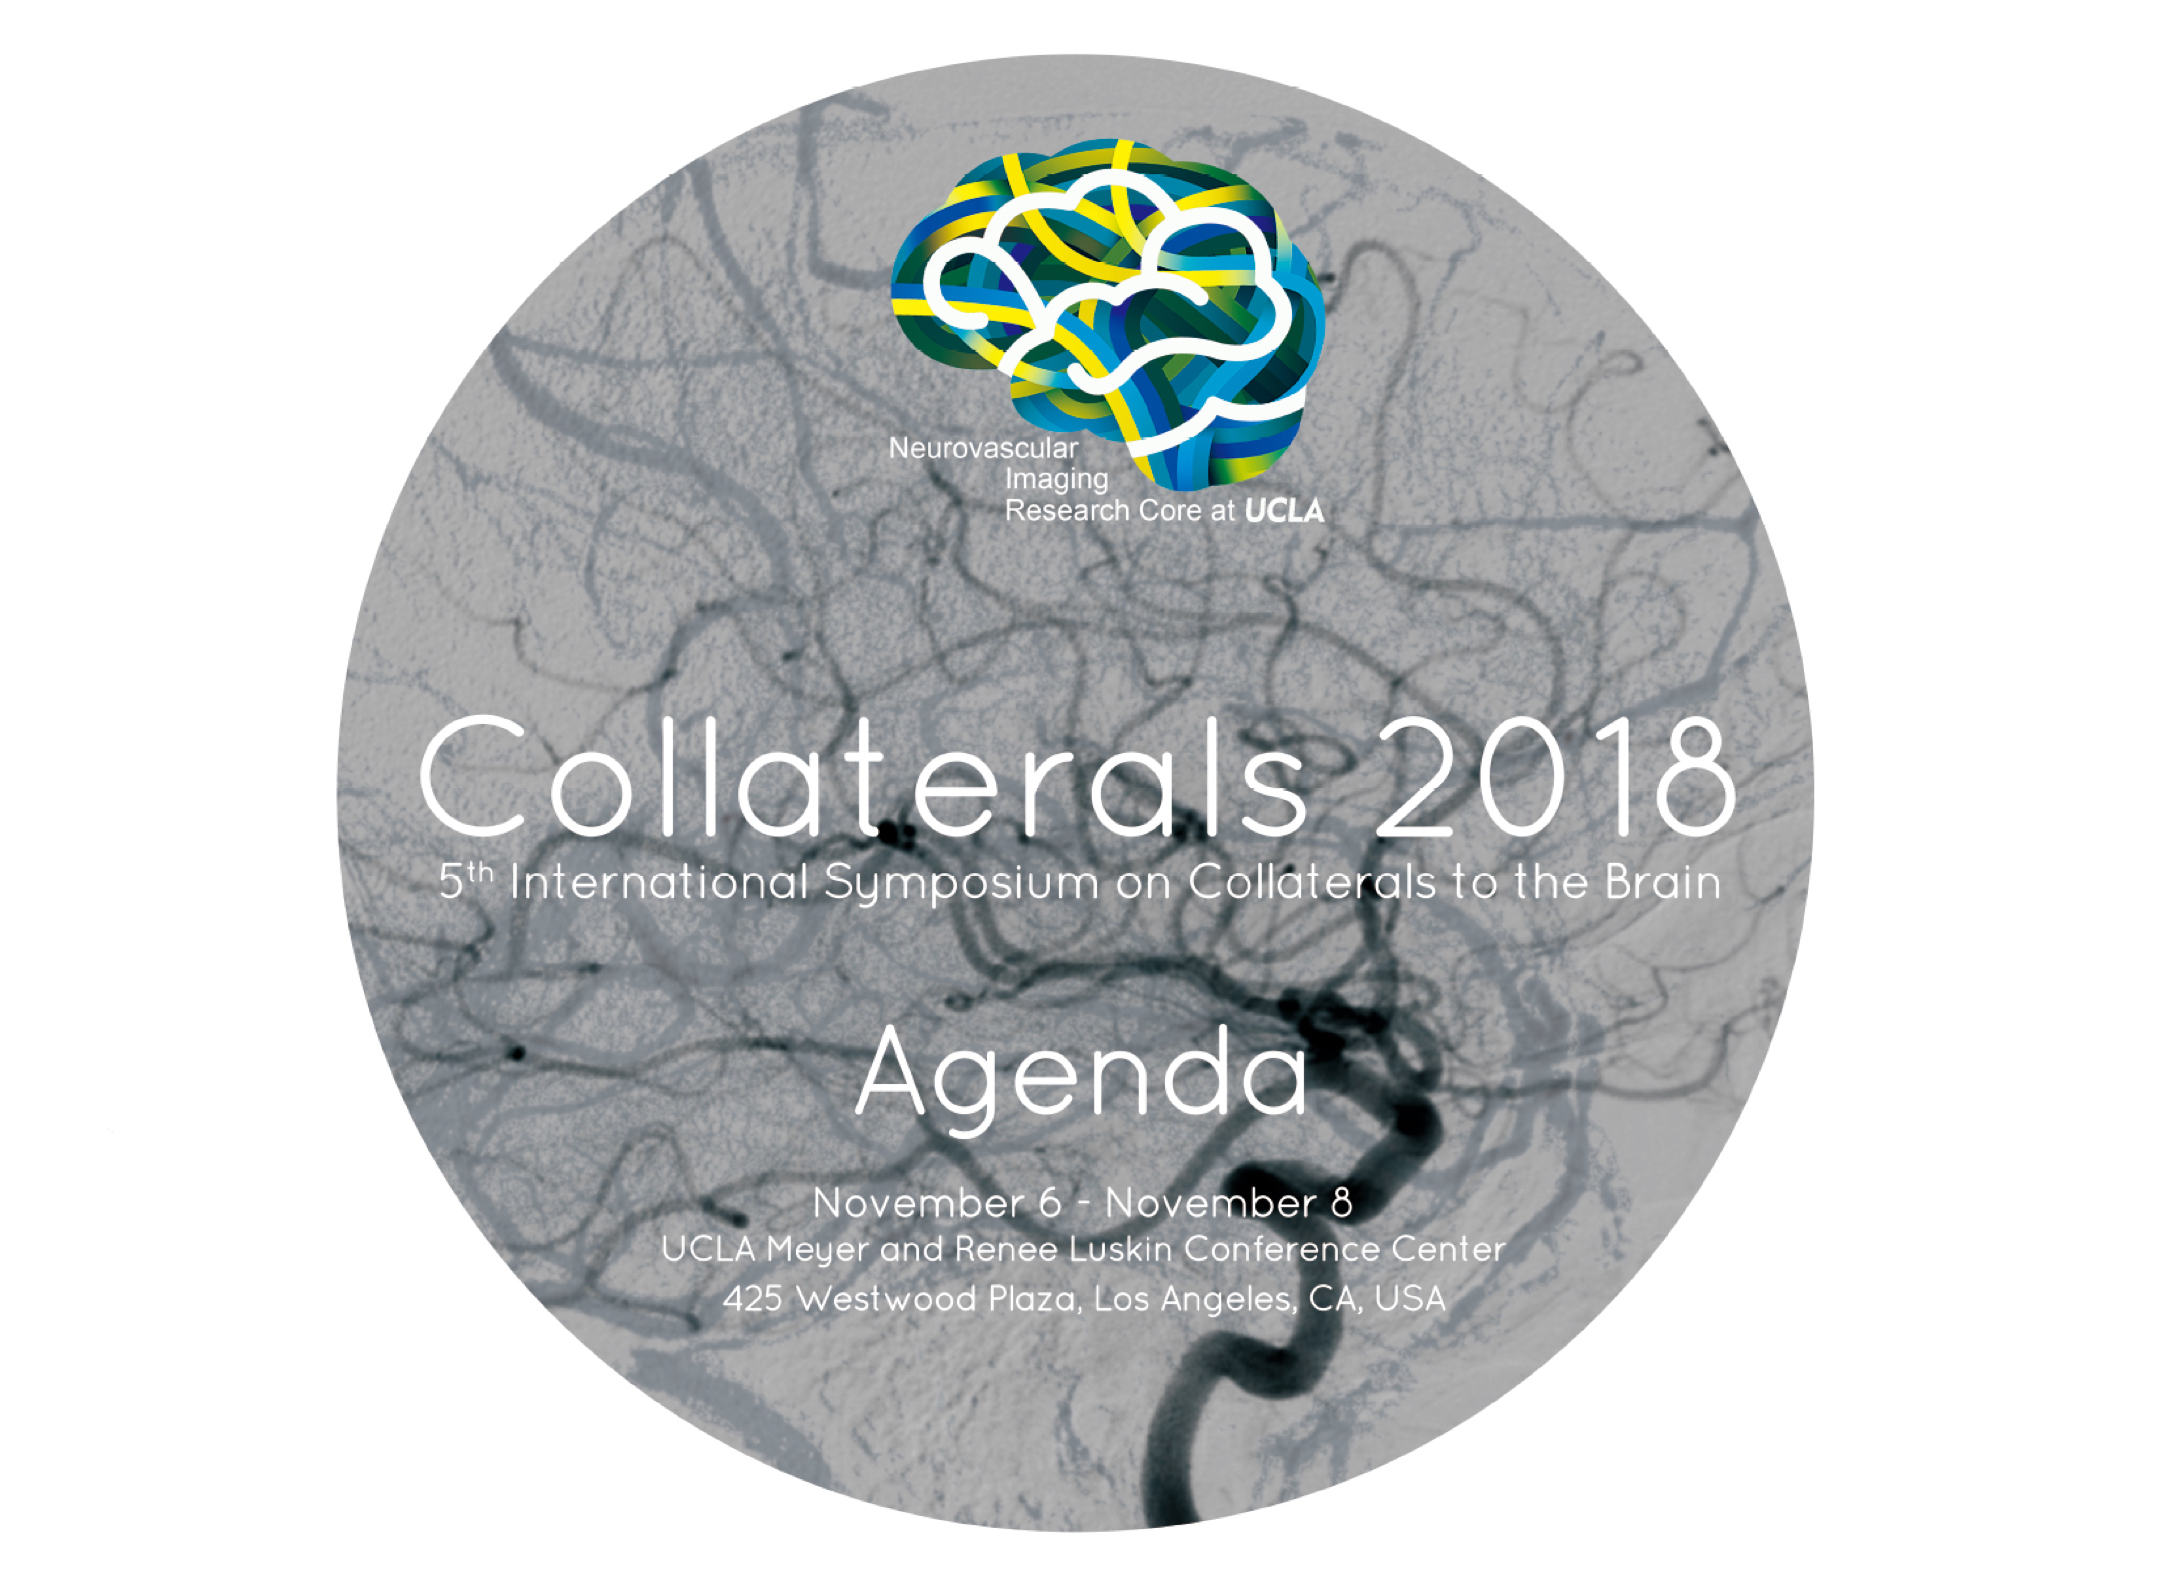 Collaterals 2019 – 6th Symposium on Collaterals to the Brain